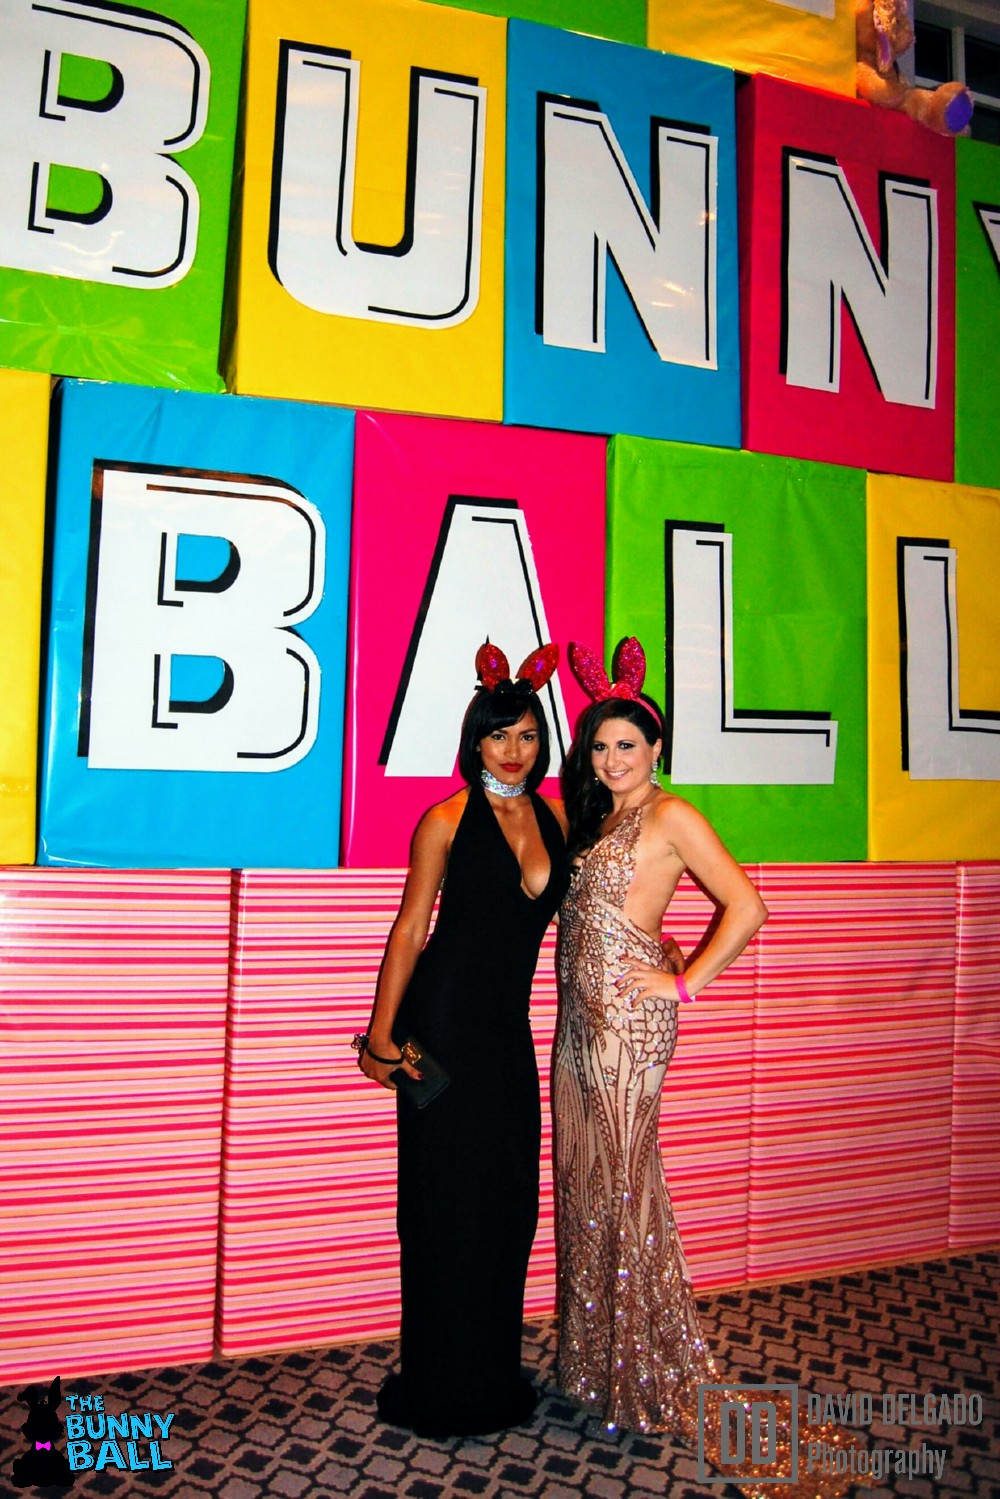 David Delgado Photography Bunny Ball 2017 - 104.jpg